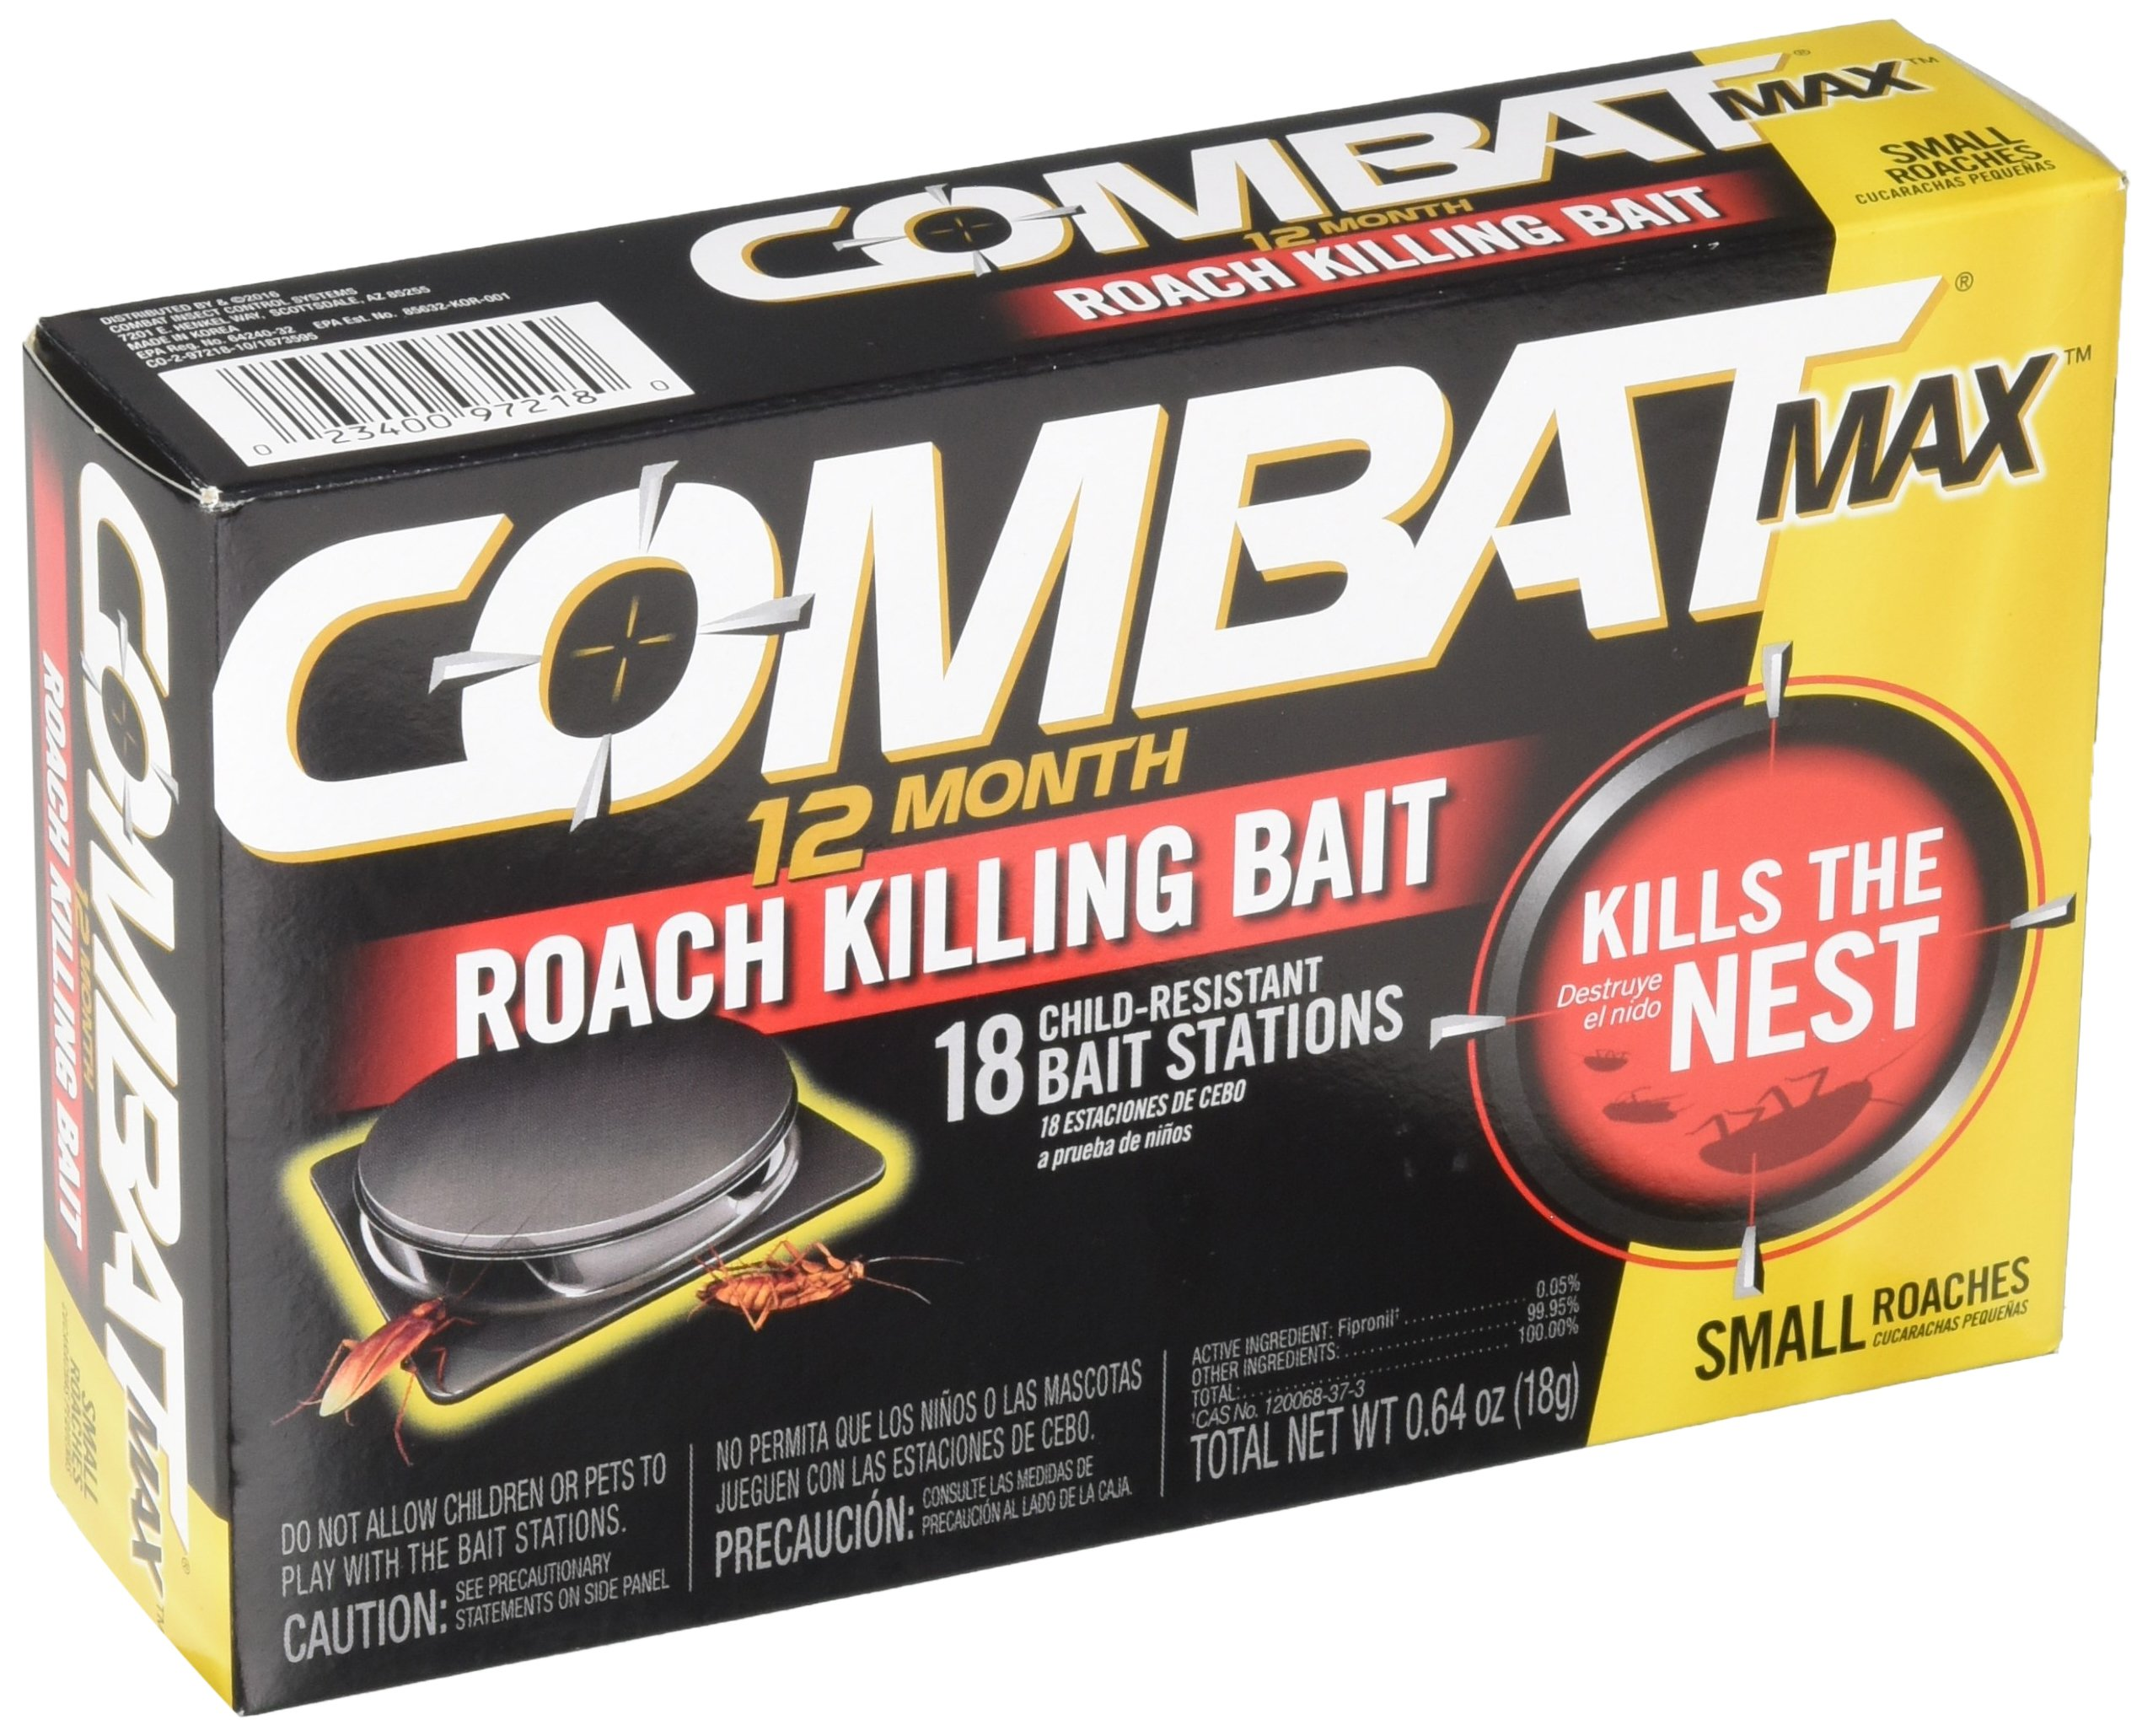 Combat Max 12 Month Roach Killing Bait, Small Roach Bait Station, Child-Resistant, 18 Count by Combat